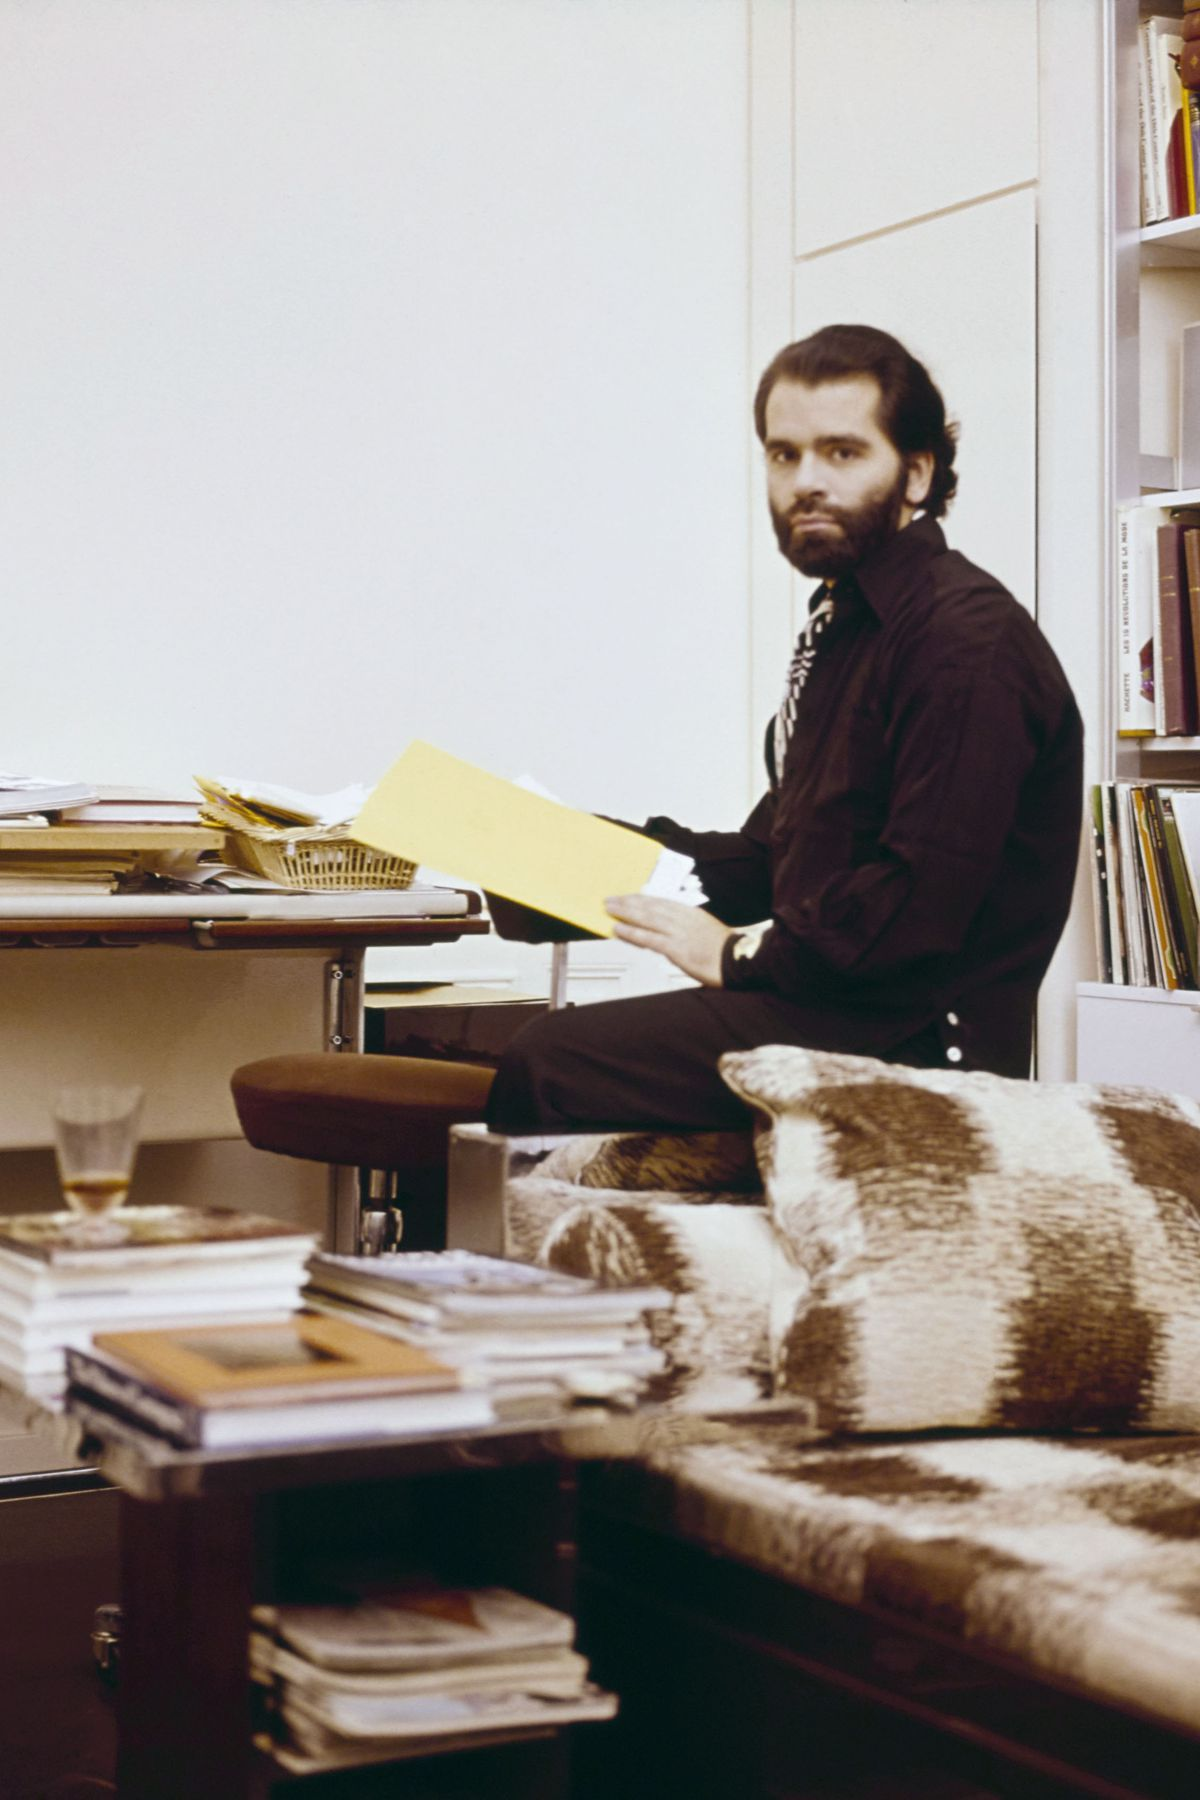 A young man with a beard and slicked back dark hair sits at a desk with a large manila folder in his hands. In the foreground there is a corner of a couch with a checkered ikat pattern and a glass coffee table stacked with large books.